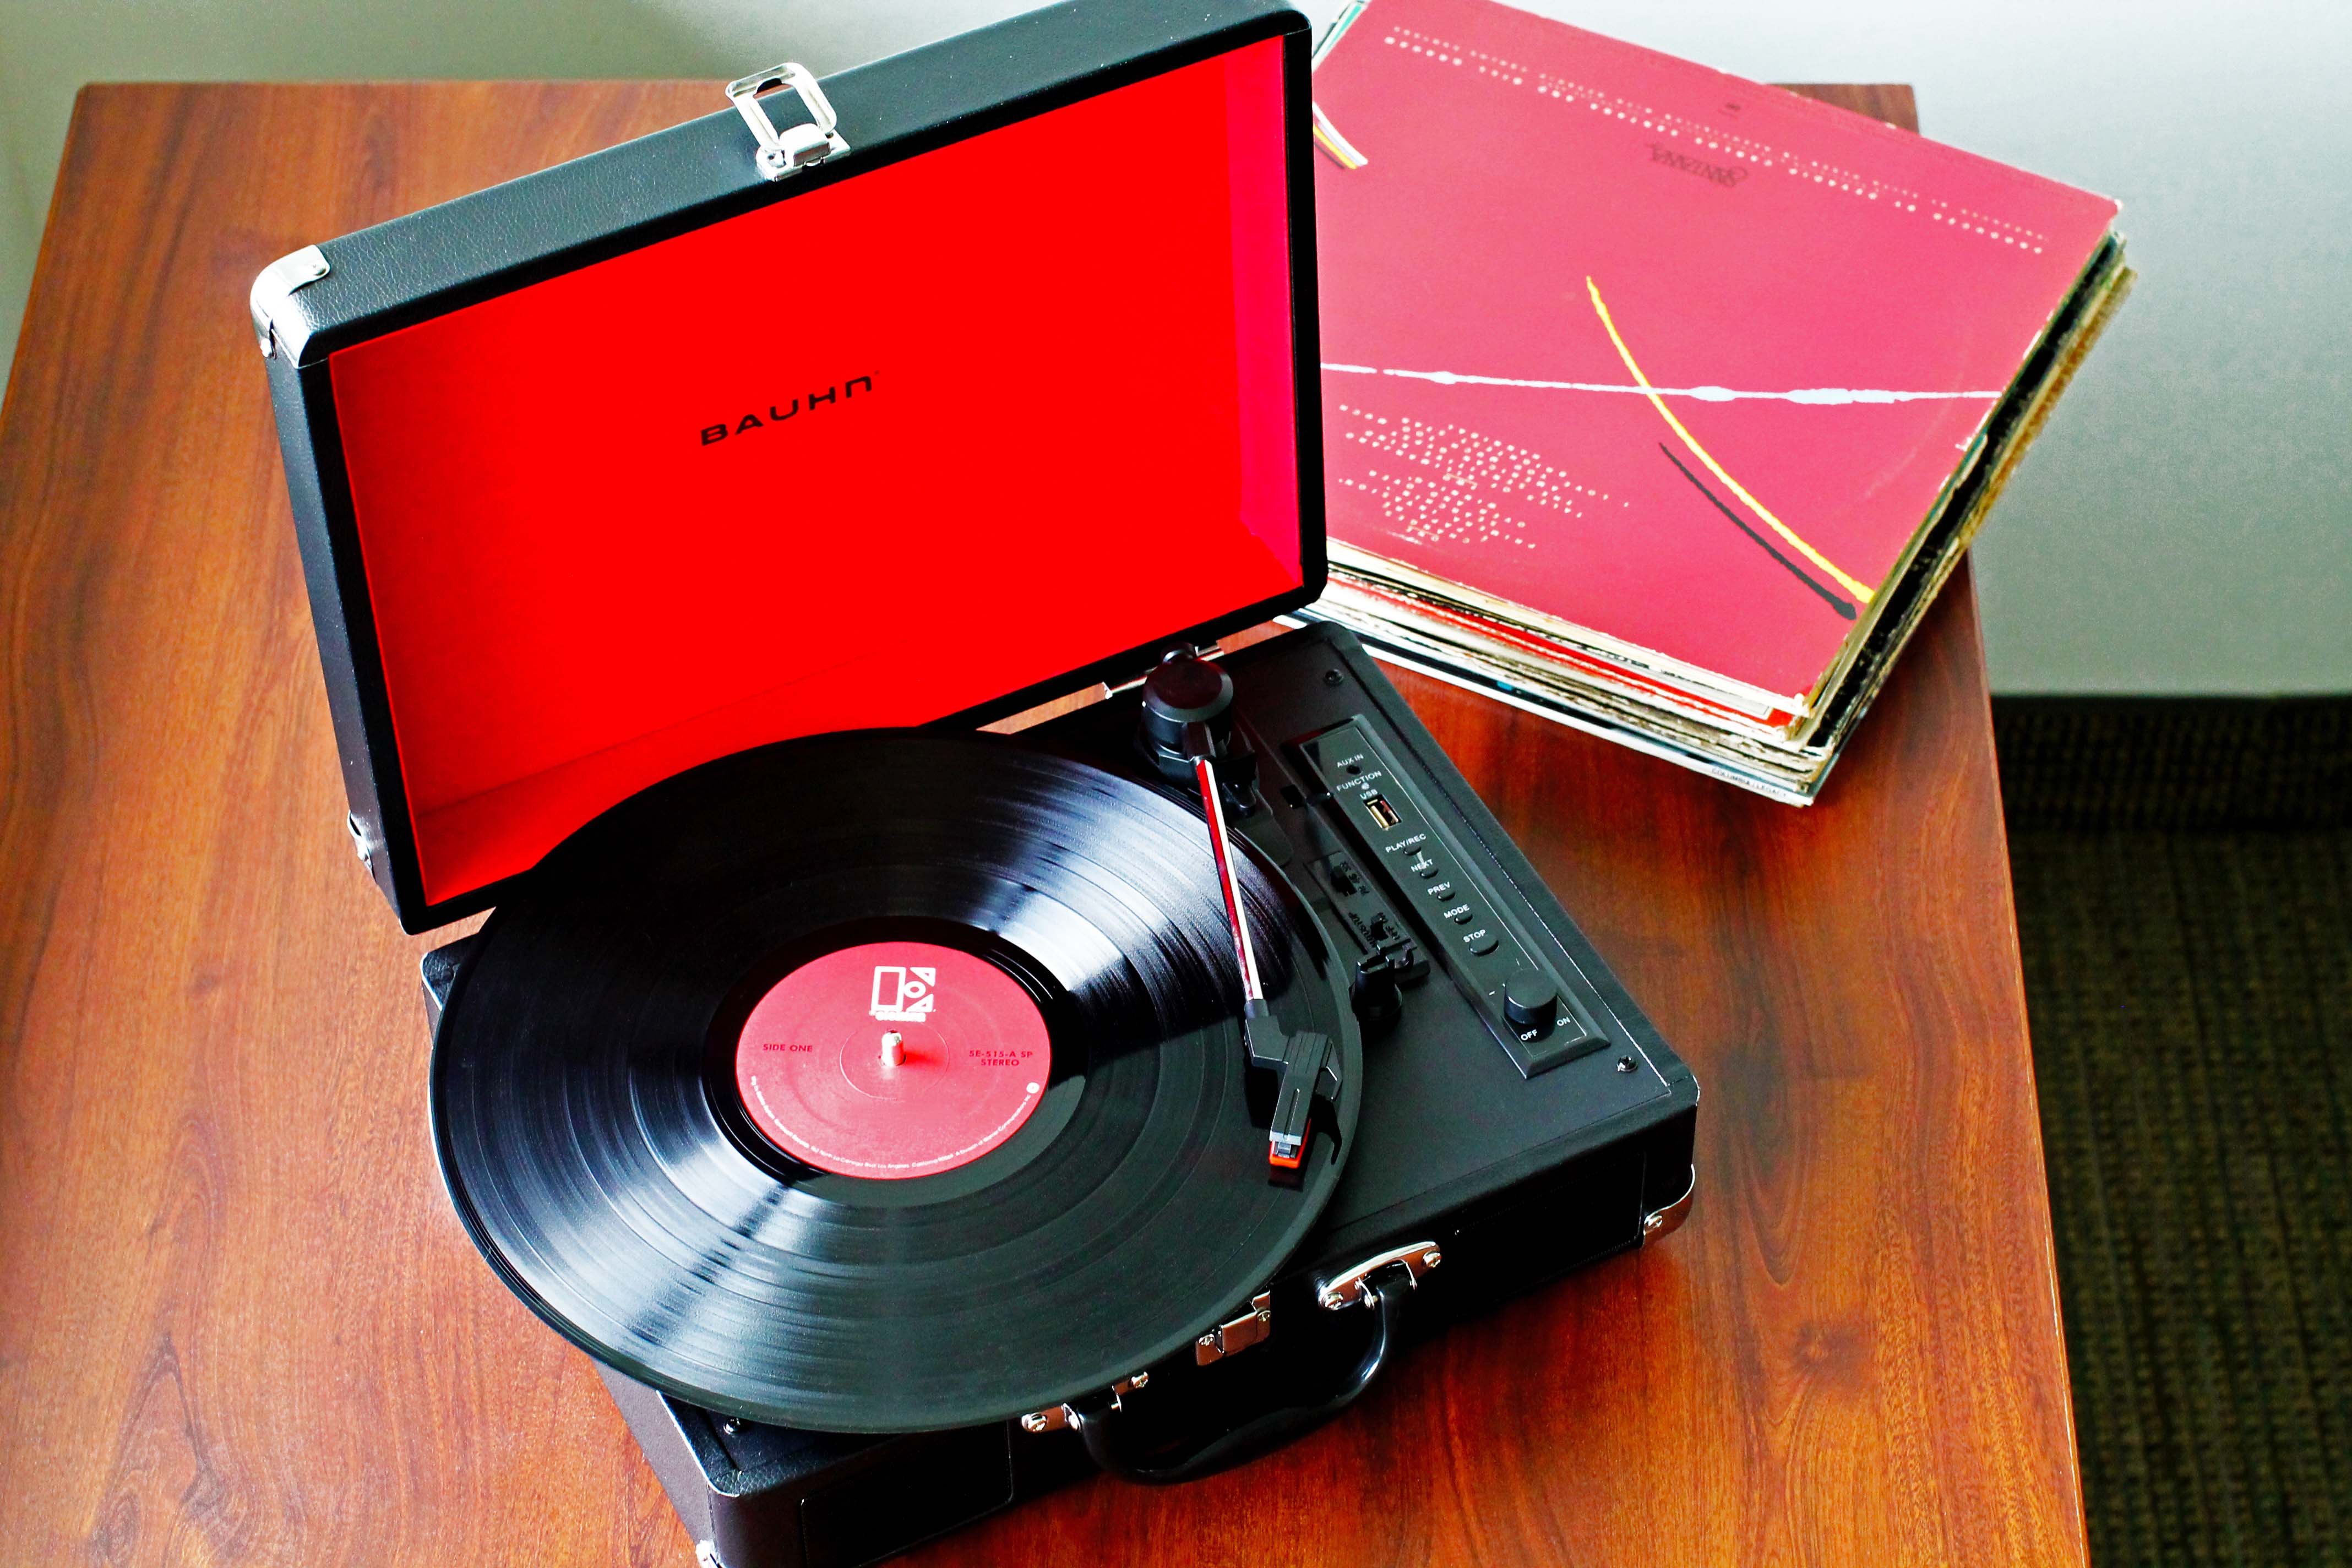 Portable turntable.